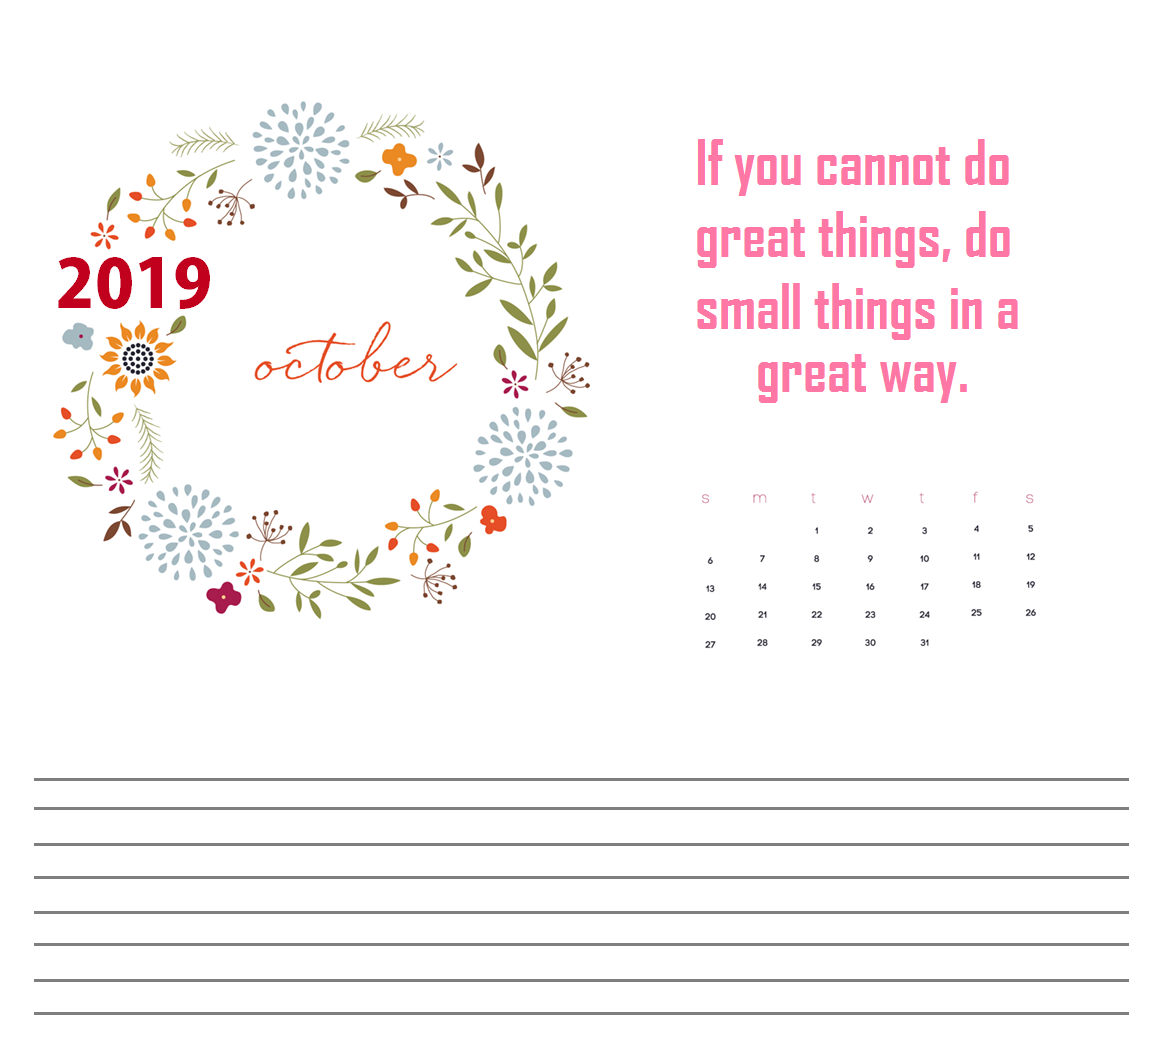 October 2019 Quotes Calendar For Desk